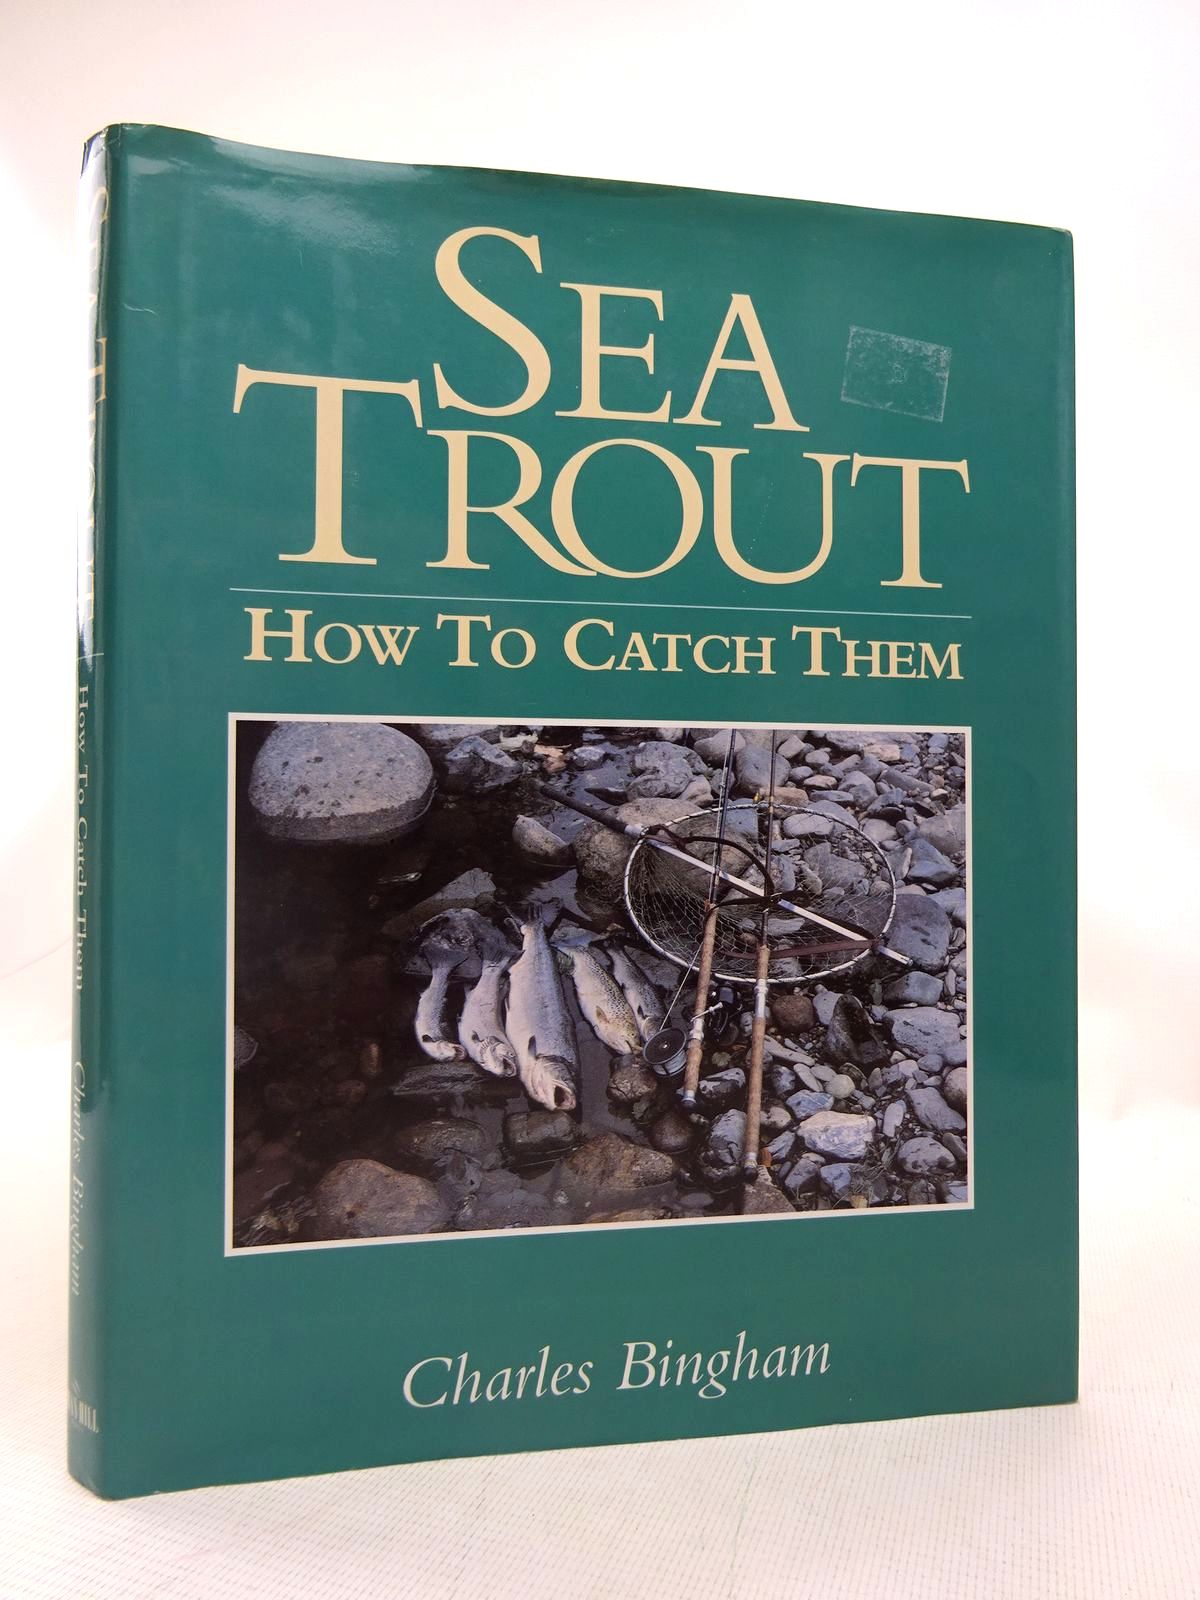 Photo of SEA TROUT HOW TO CATCH THEM- Stock Number: 1816677